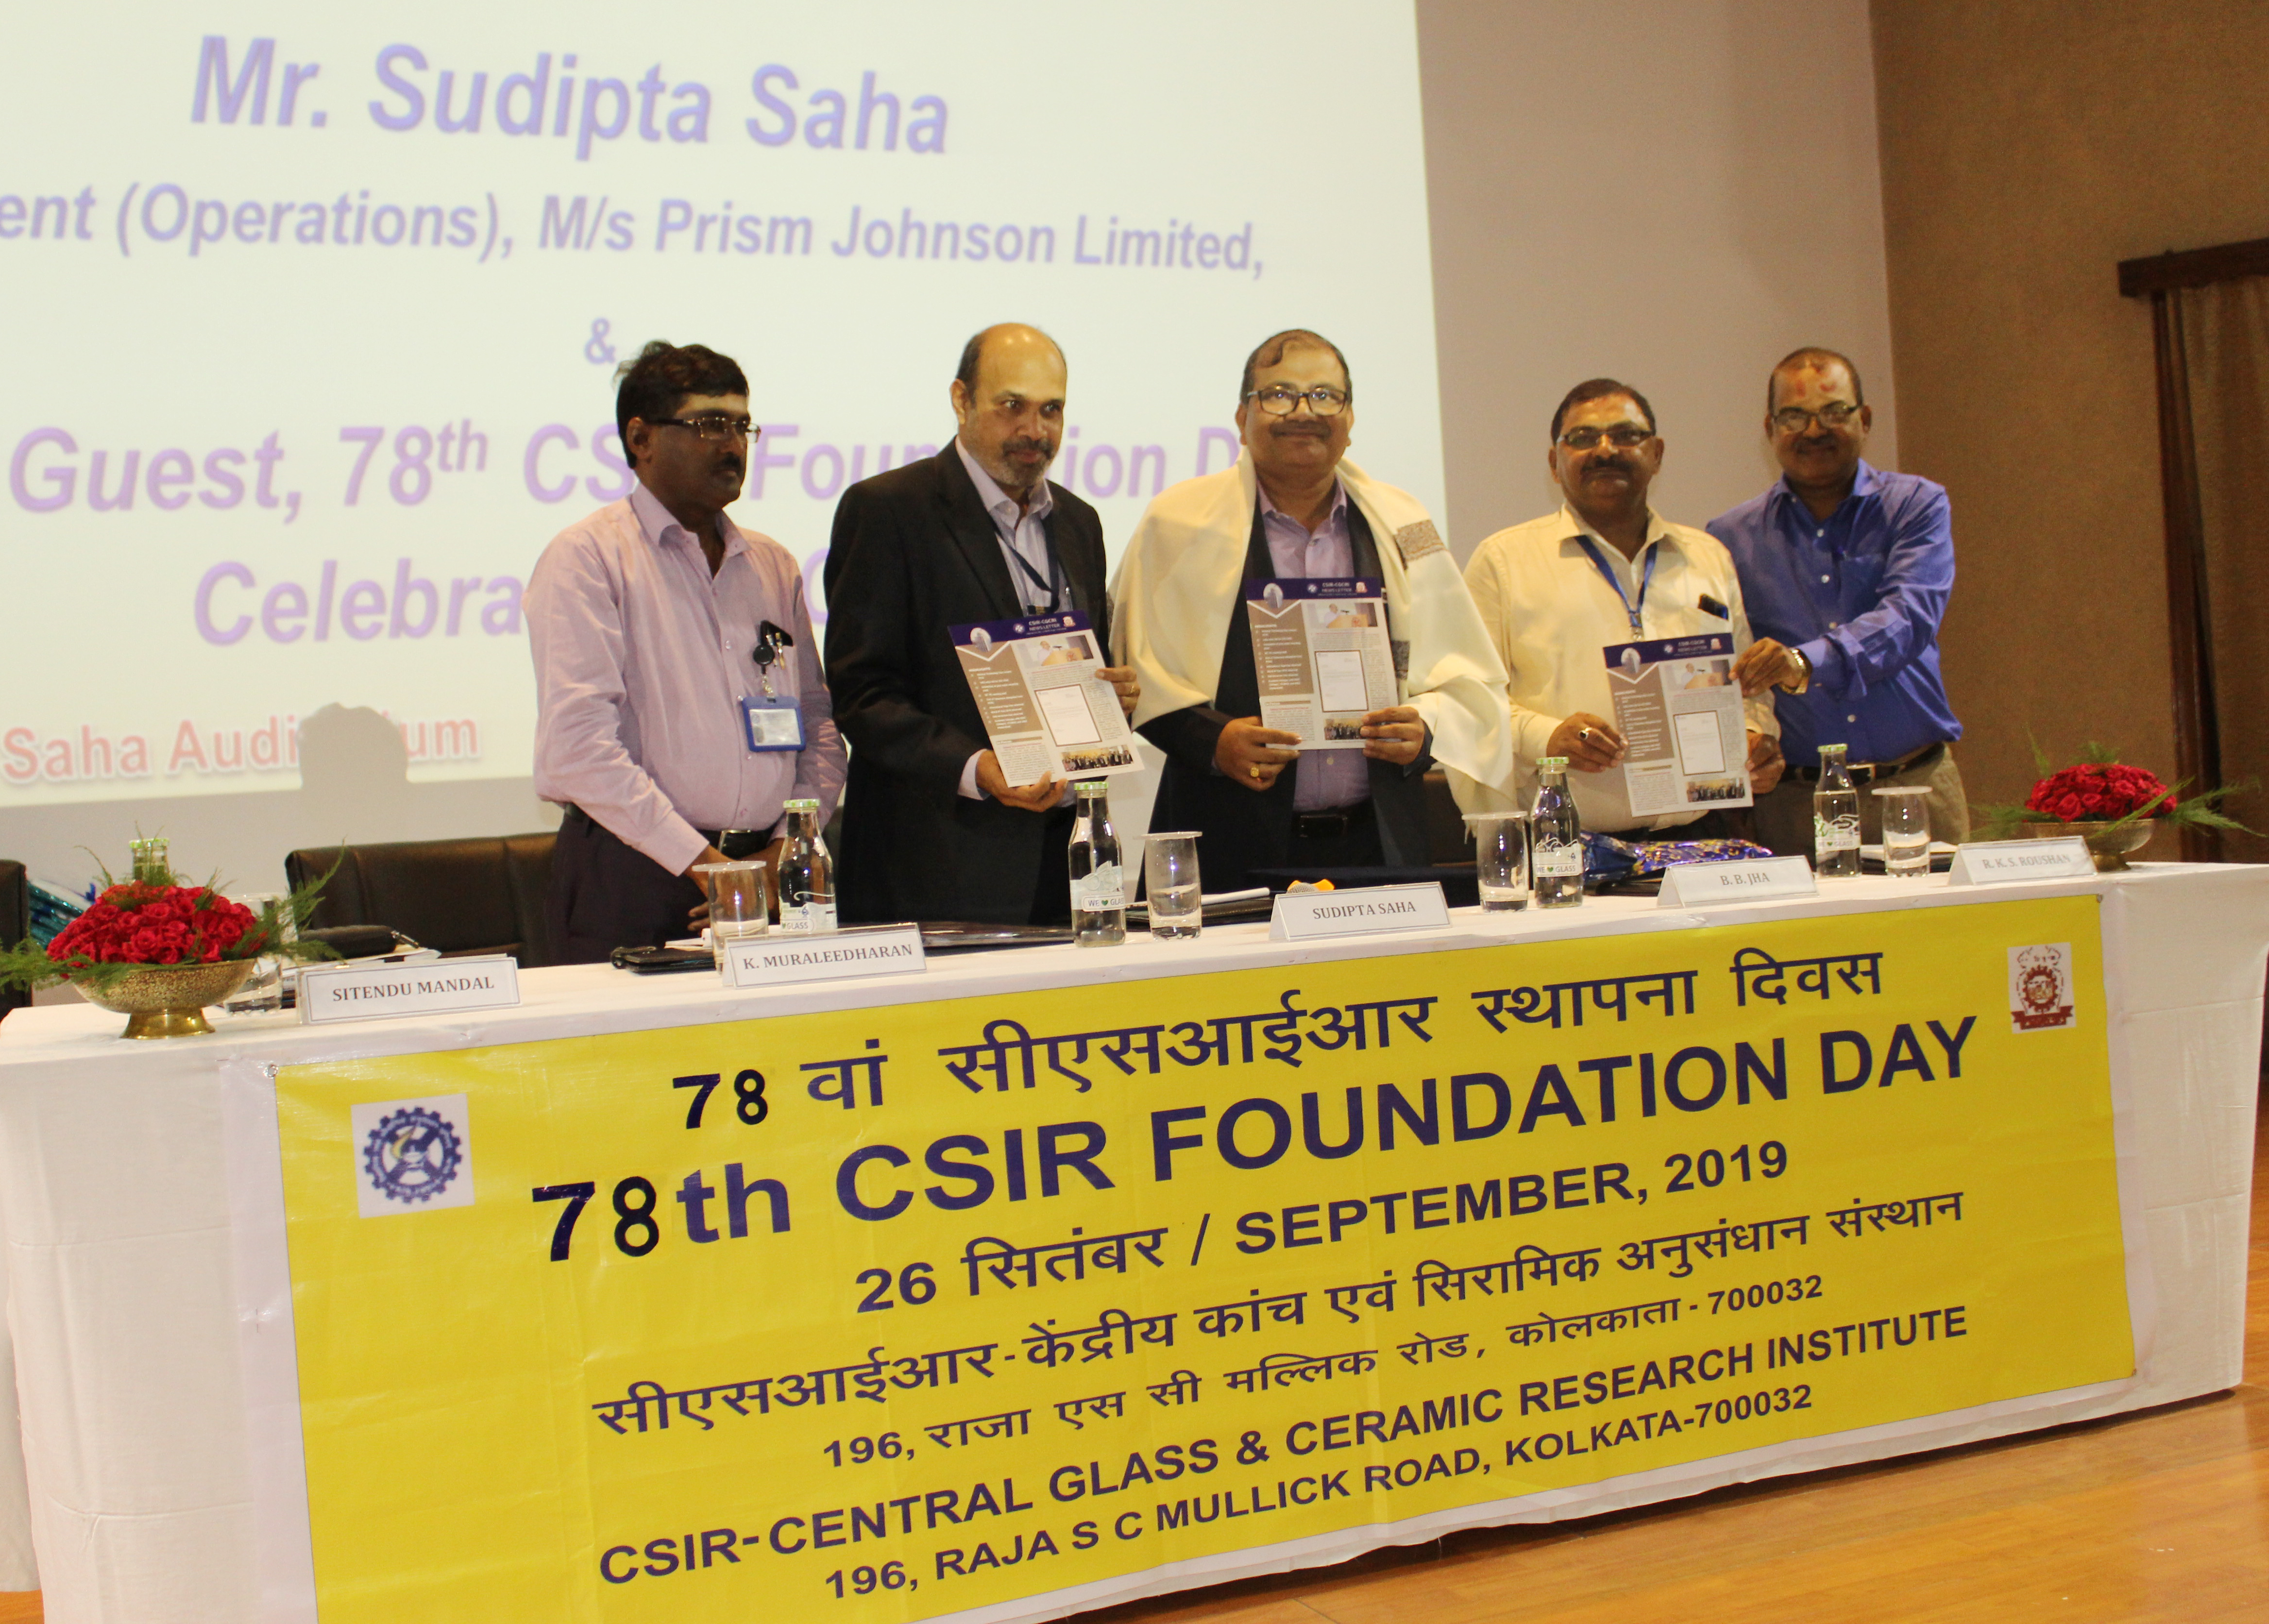 78th CSIR Foundation Day Celebration of CSIR - release of Newsletter